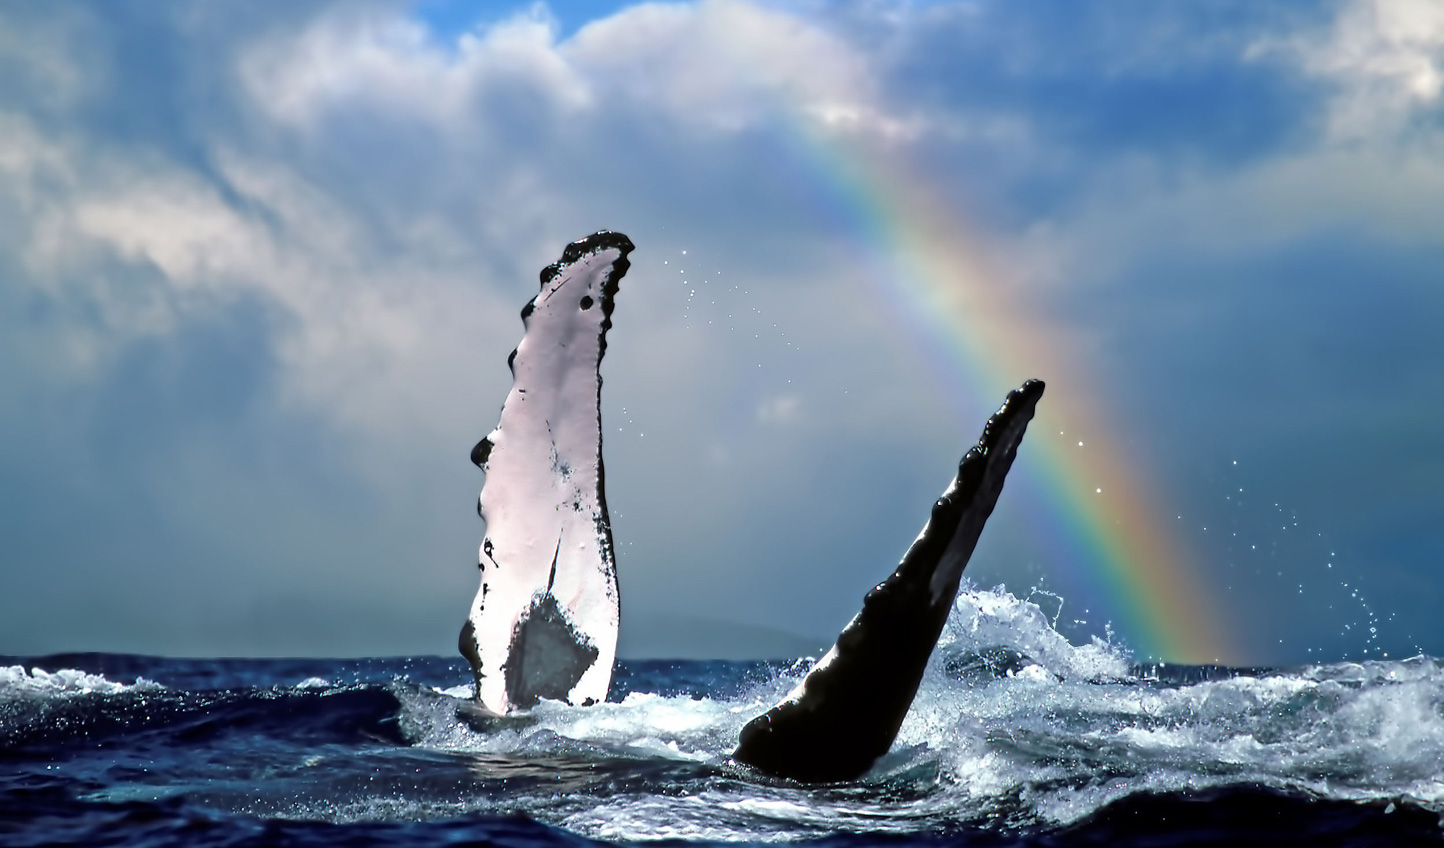 Time your visit right and catch sight of breaching whales